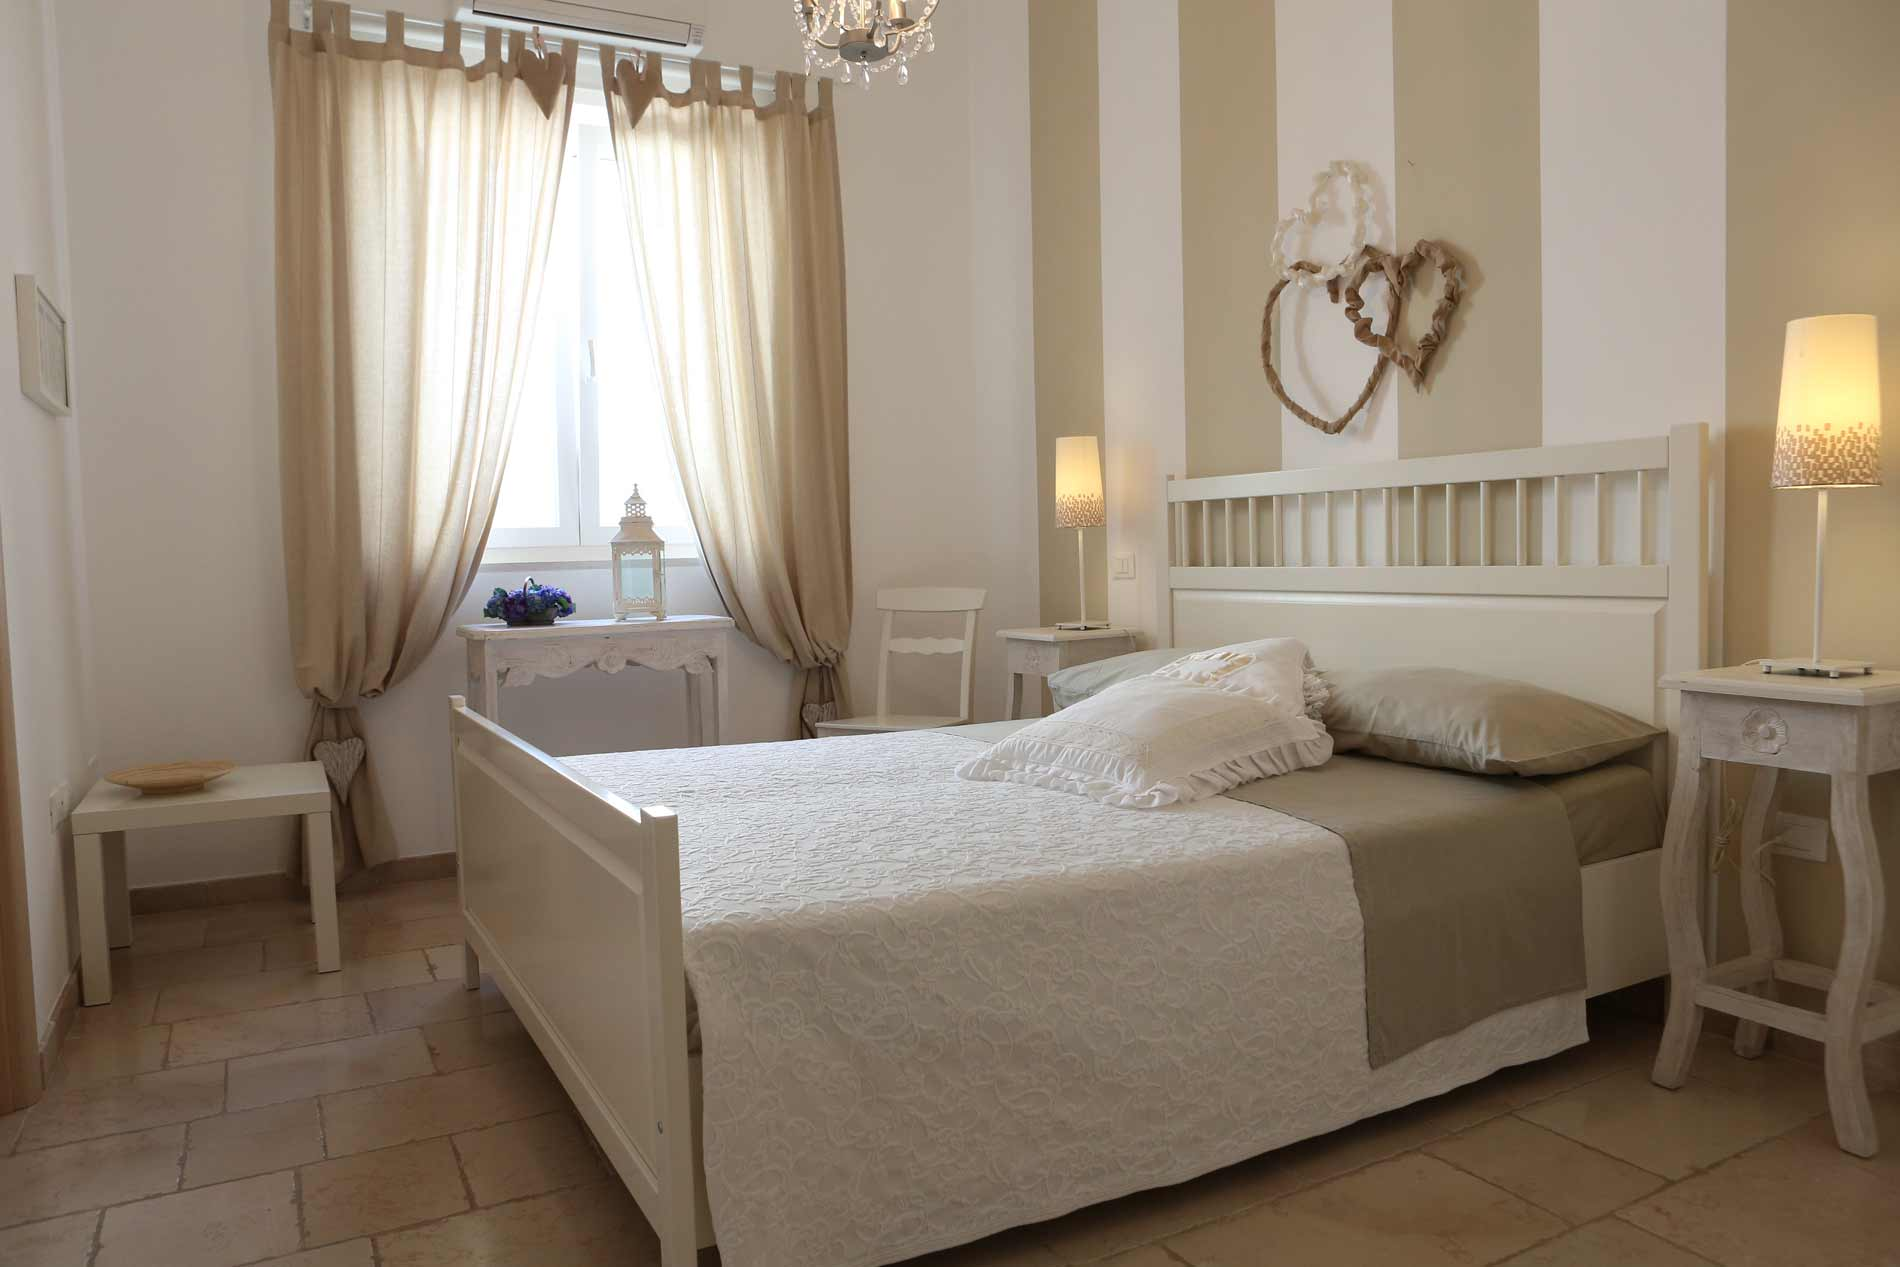 La Lanterna Bed & Breakfast in Salento a pochi passi da Pescoluse ...